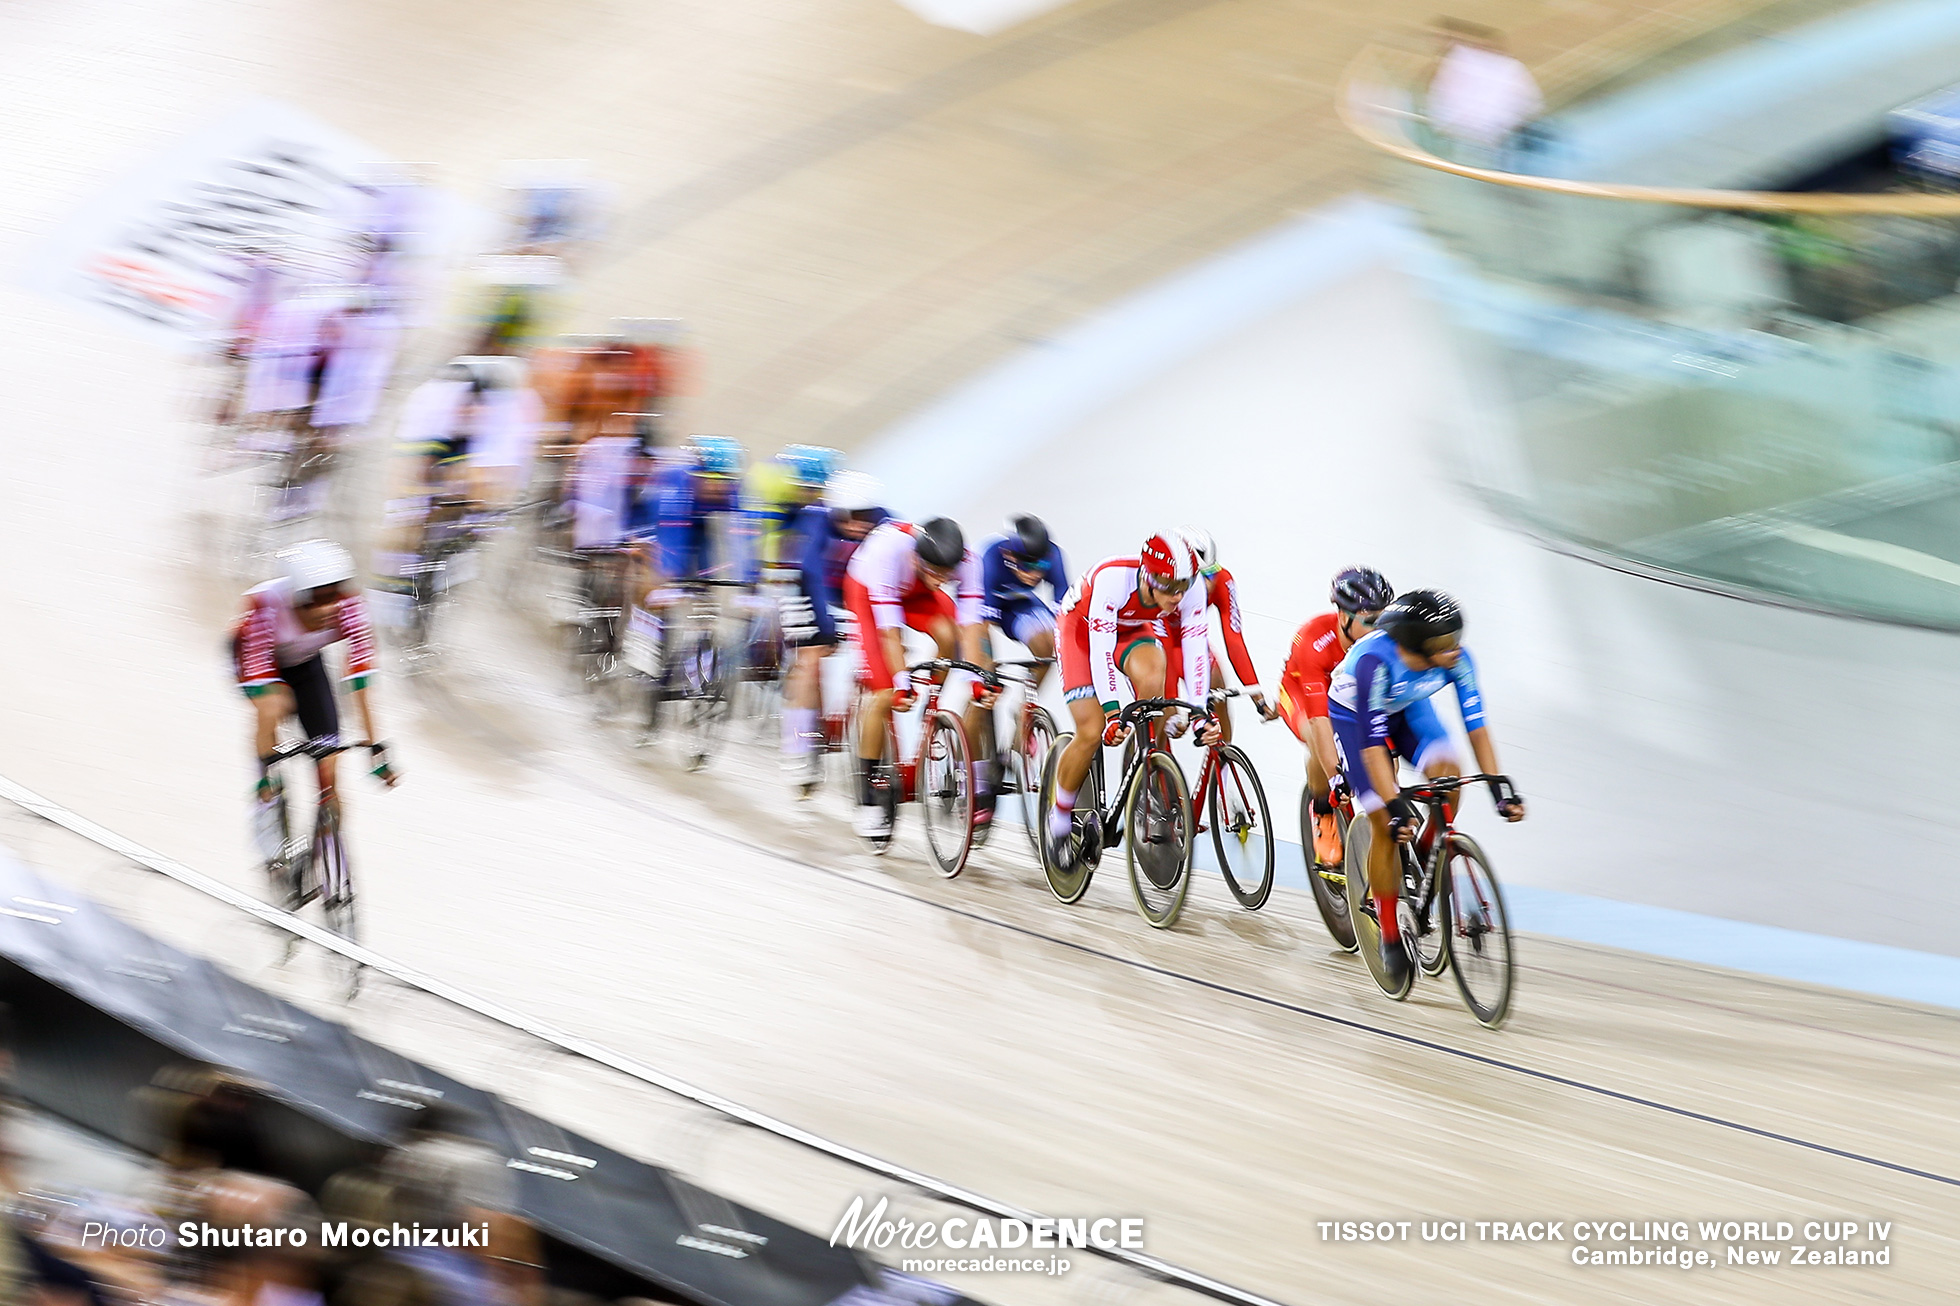 Scratch Race / Men's Omnium / TISSOT UCI TRACK CYCLING WORLD CUP IV, Cambridge, New Zealand